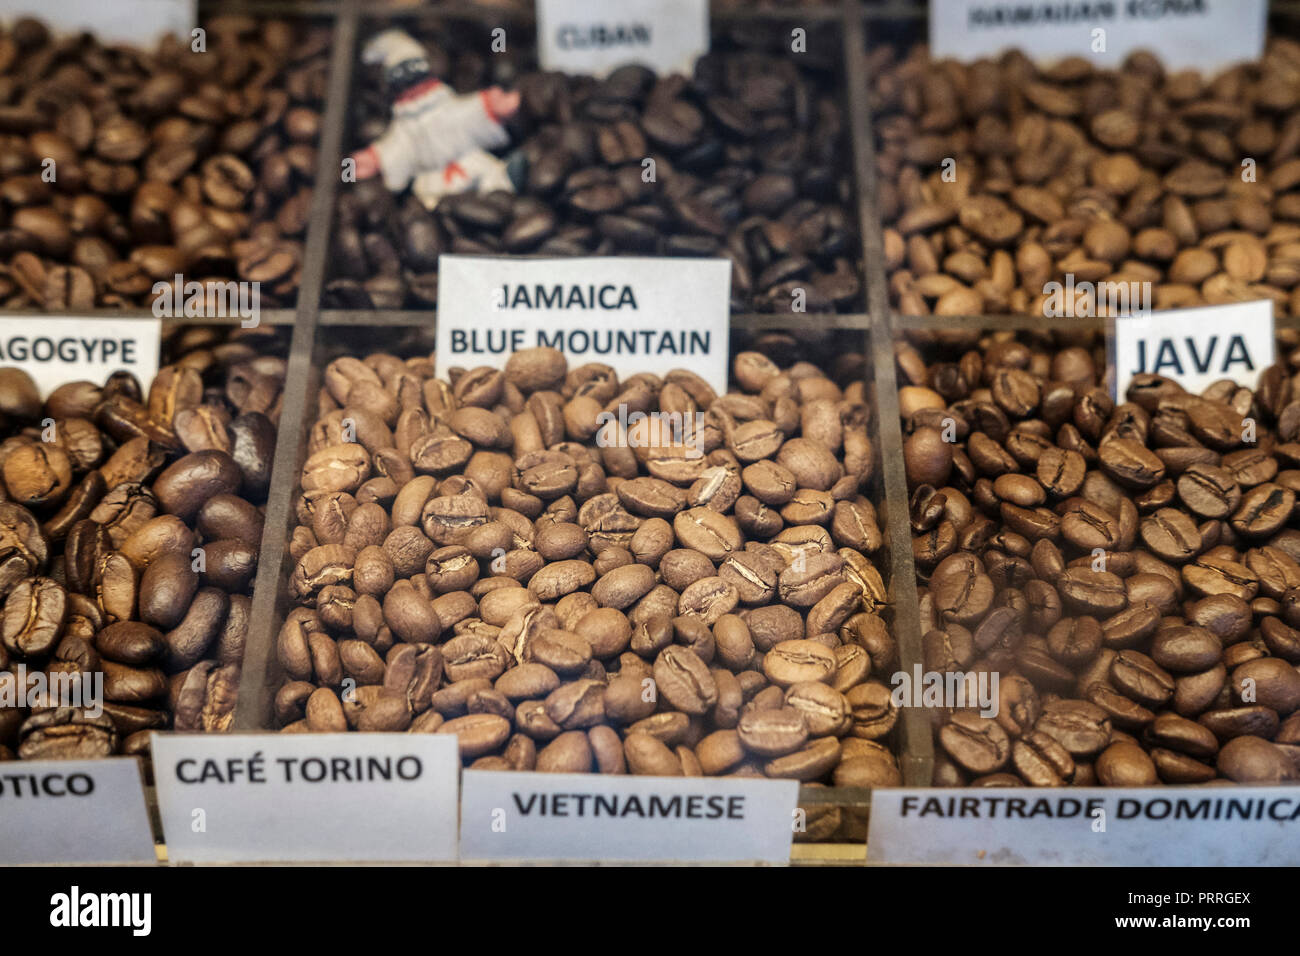 UK,London,Soho,Algerian coffee company-  Jamaica Bluen Montain and other variety of coffee beans on display-selective focus - Stock Image